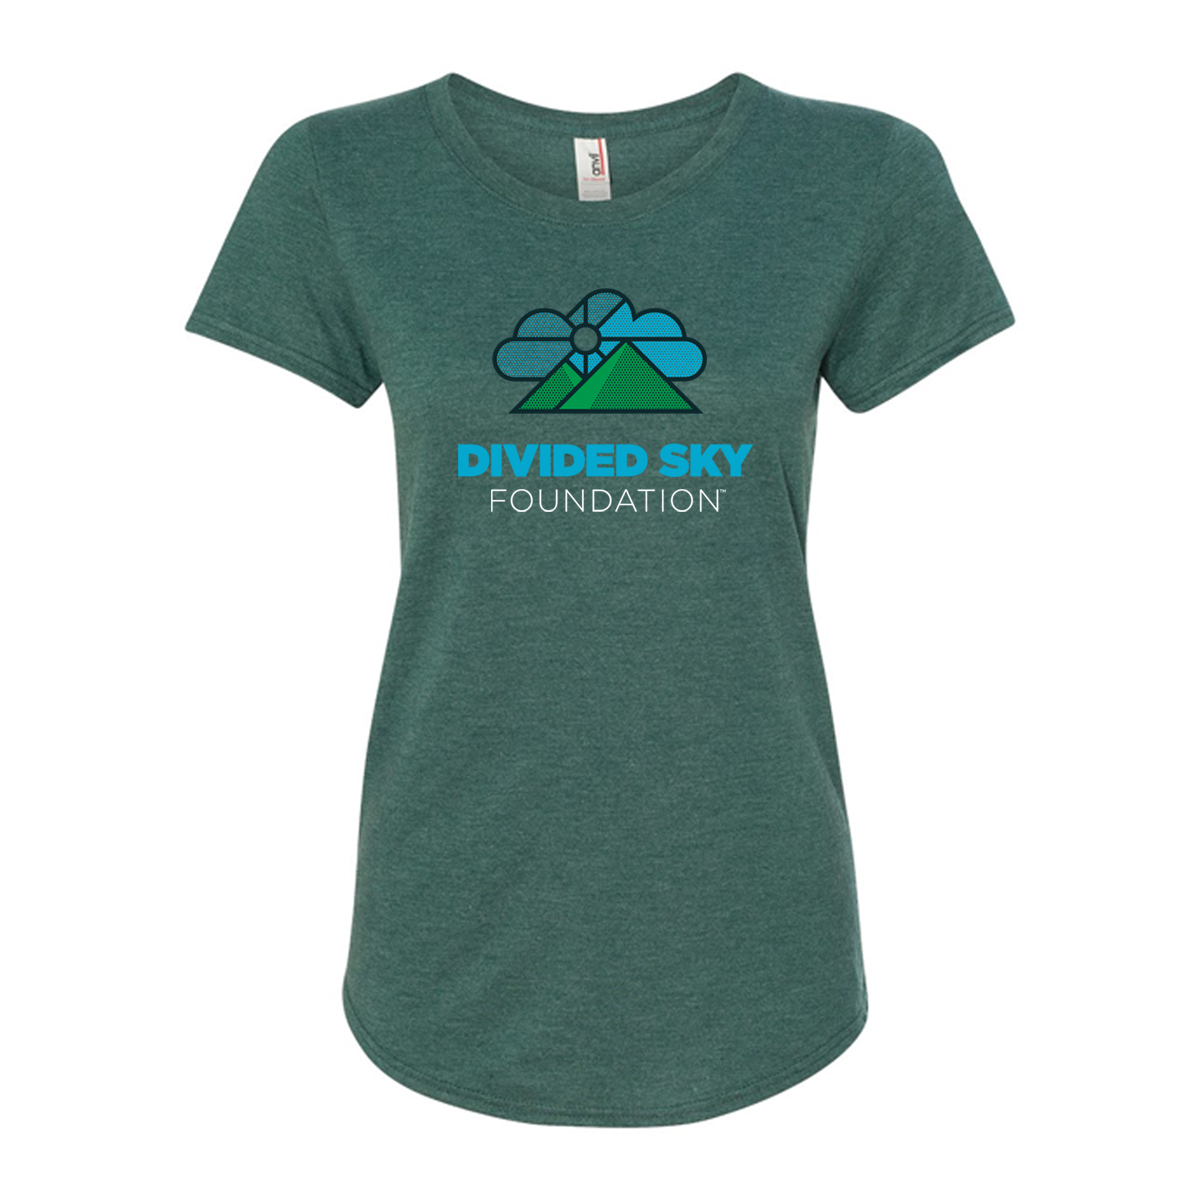 Women's Divided Sky Foundation Tri-blend Tee